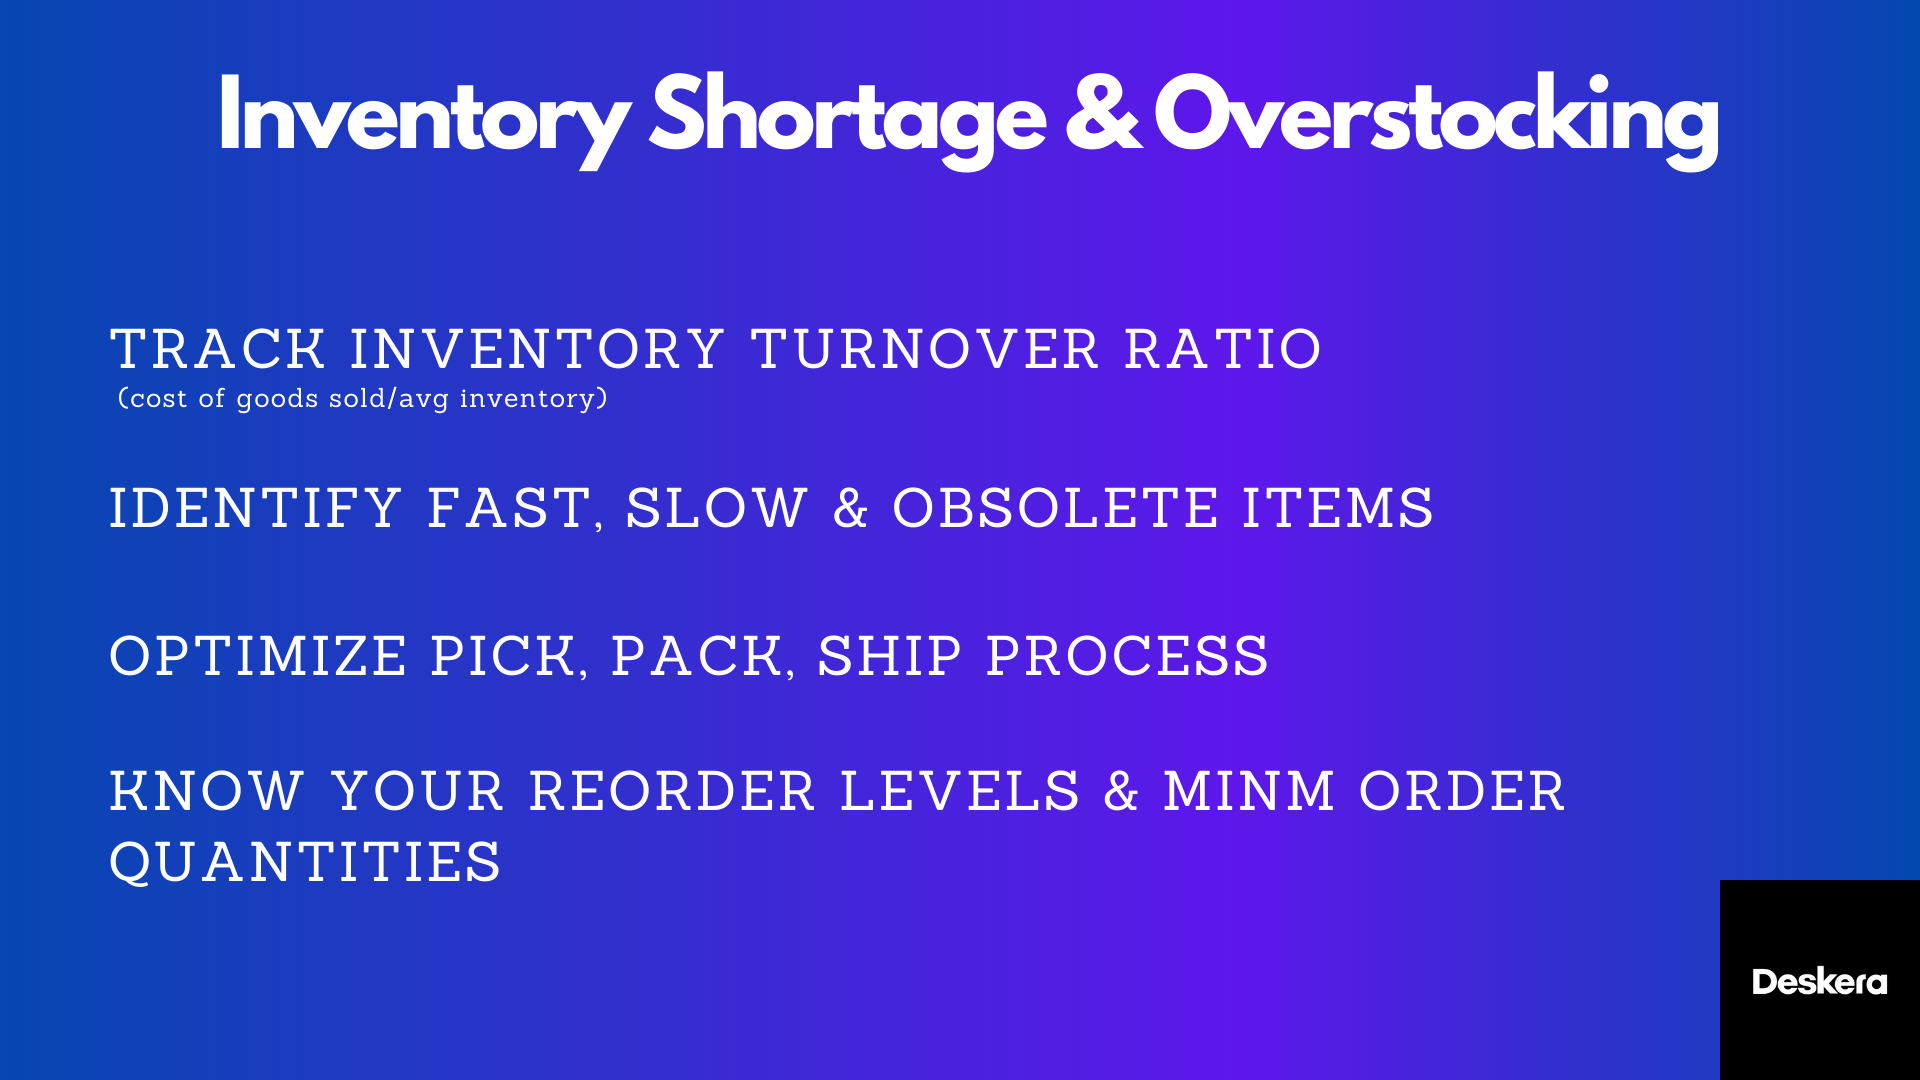 Inventory Shortage and Overstocking are two main problems which affect wholesale businesses